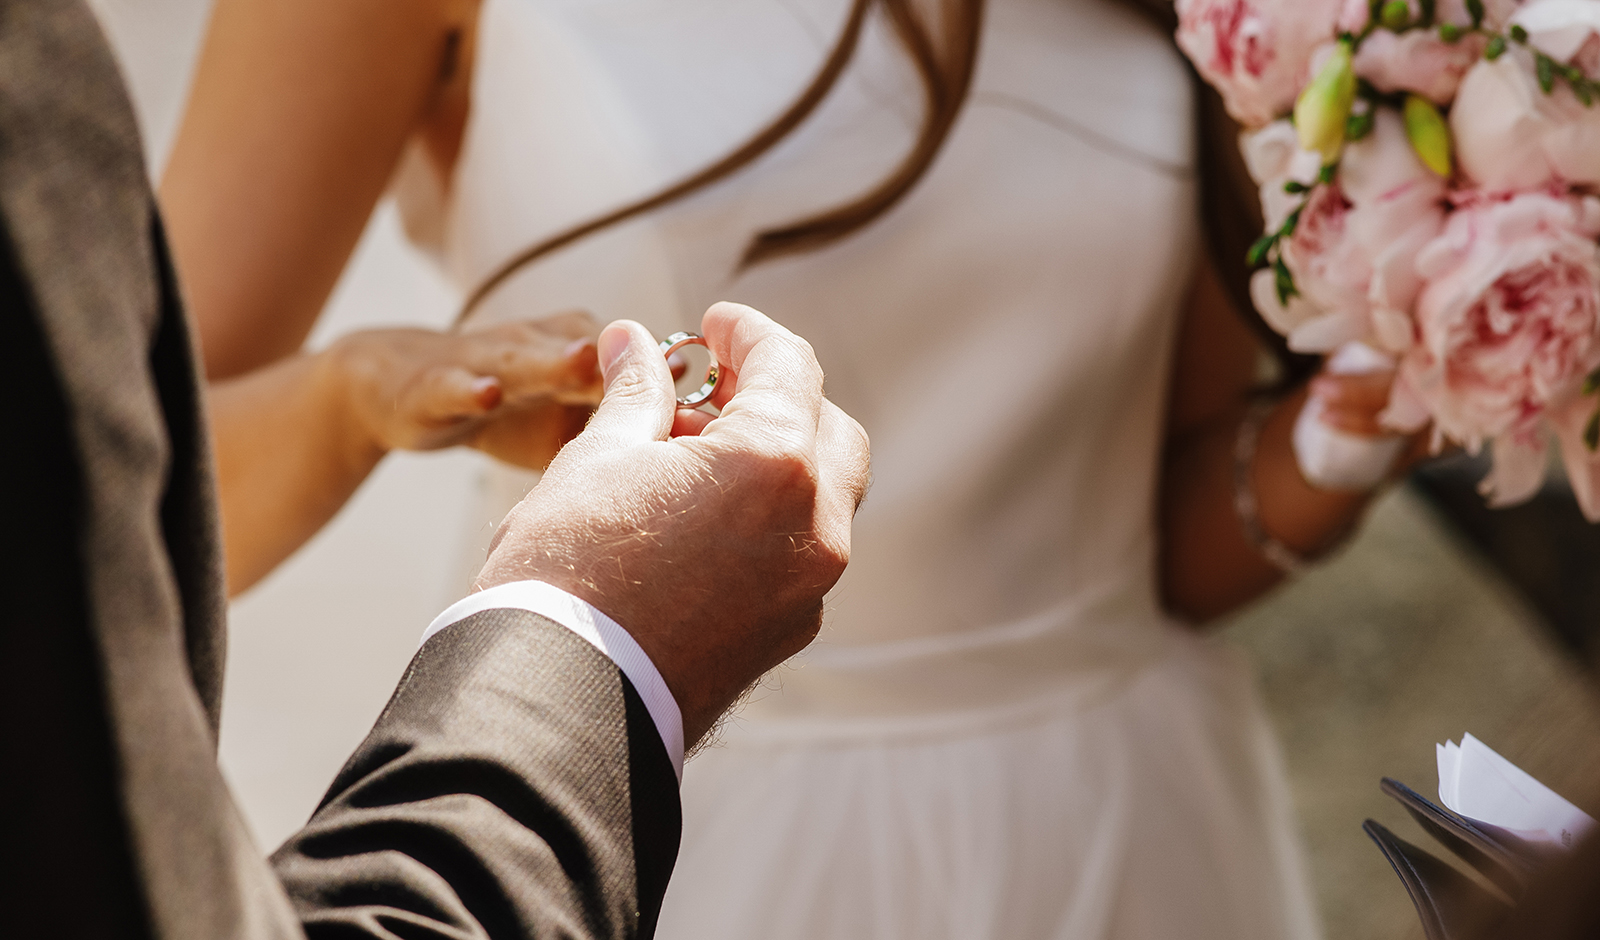 most-important-traits-to-look-for-in-a-lasting-partner-man-putting-ring-on-womans-finger